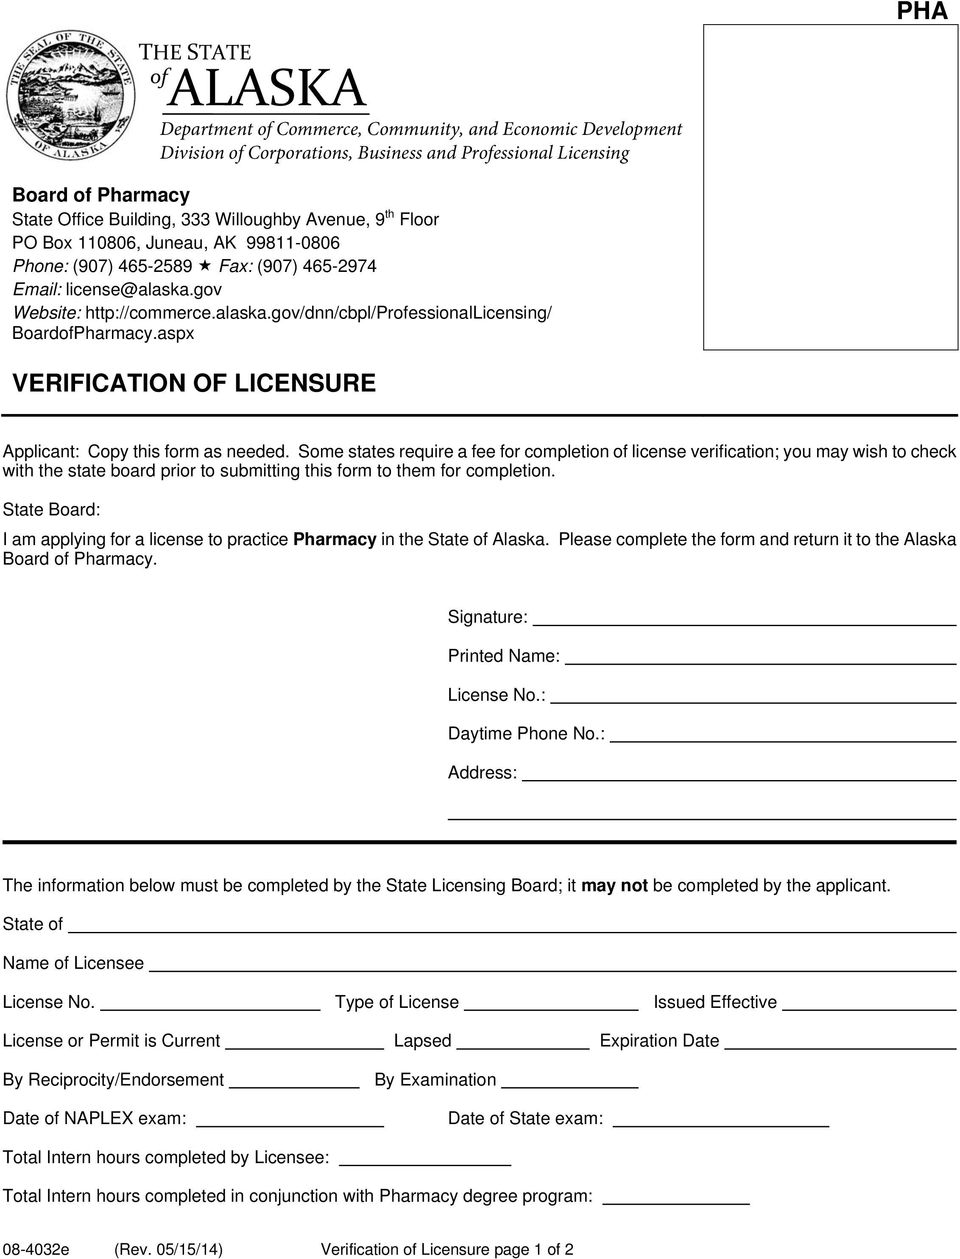 State Board: I am applying for a license to practice Pharmacy in the State Alaska. Please complete the form and return it to the Alaska. Signature: Printed Name: License No.: Daytime Phone No.